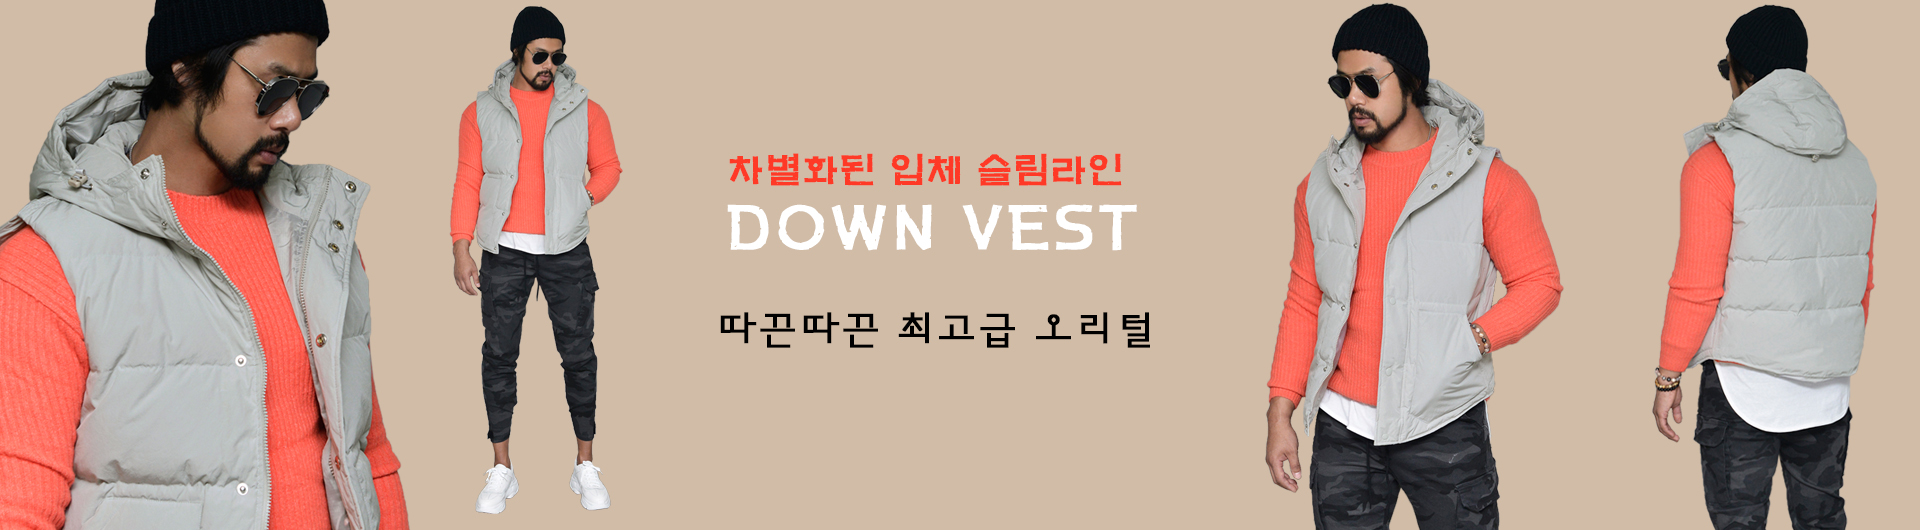 downvest